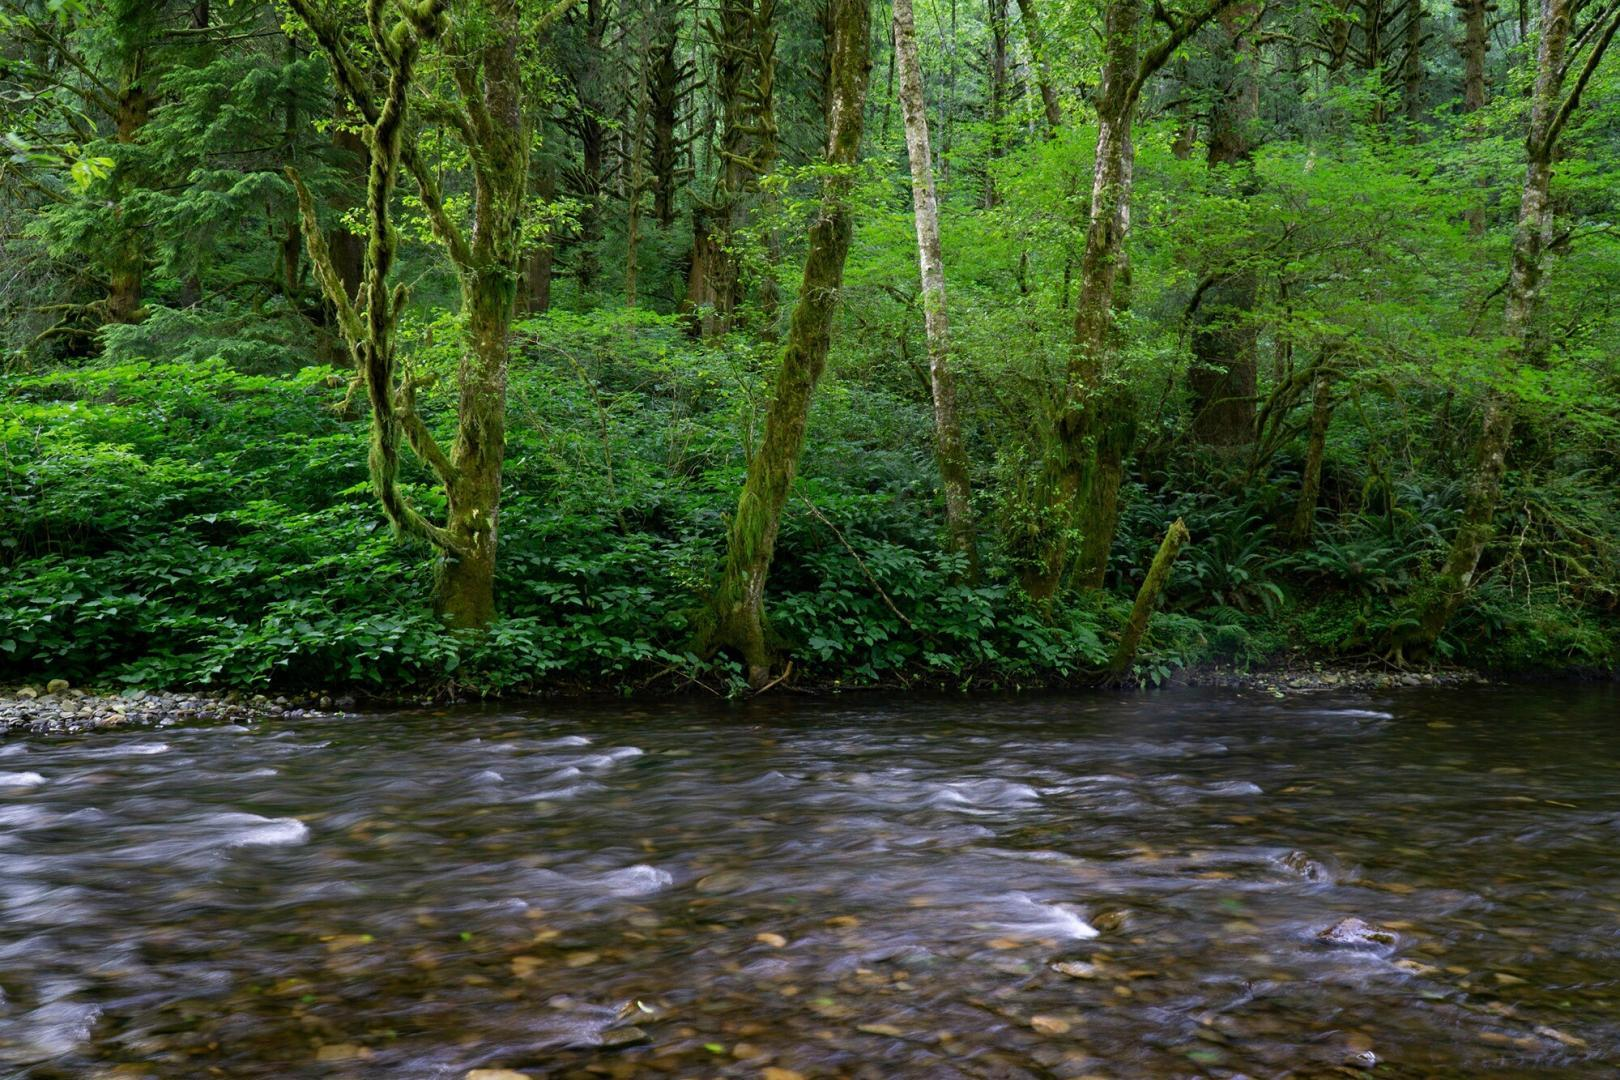 The proposed North Fork Wilson Wild and Scenic River. Source: Daniel Howland.